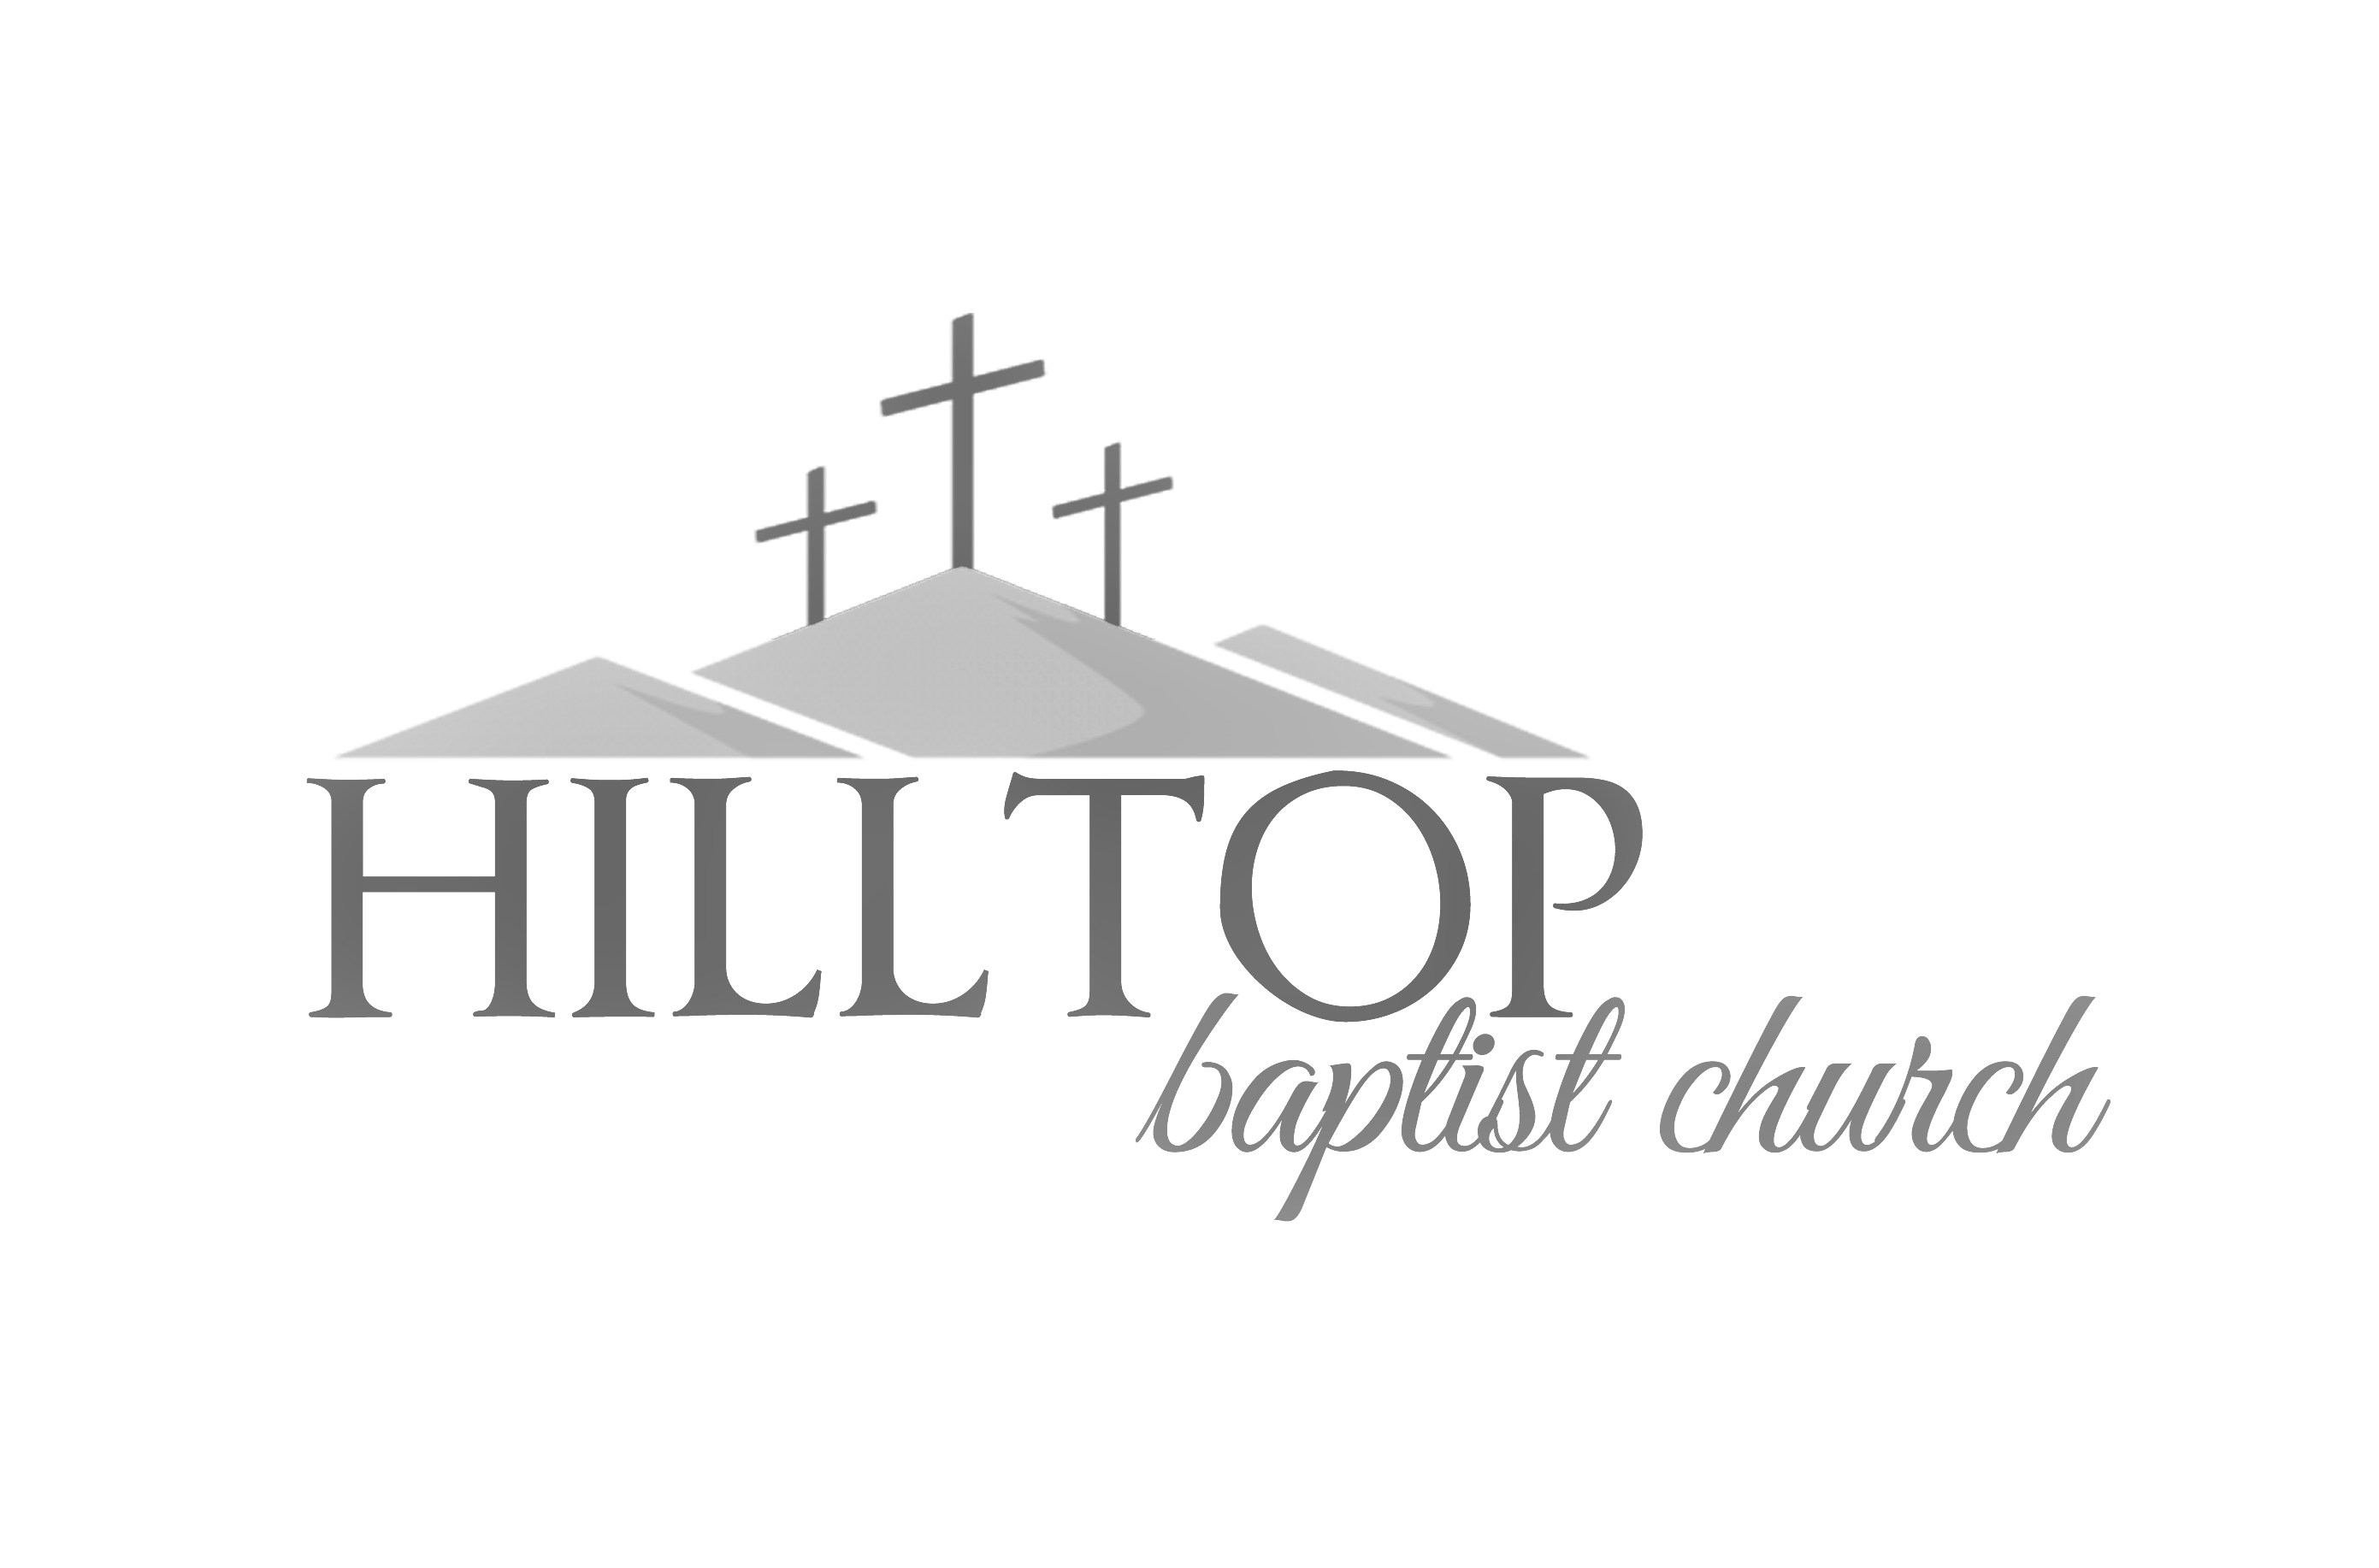 Hilltop Baptist Church